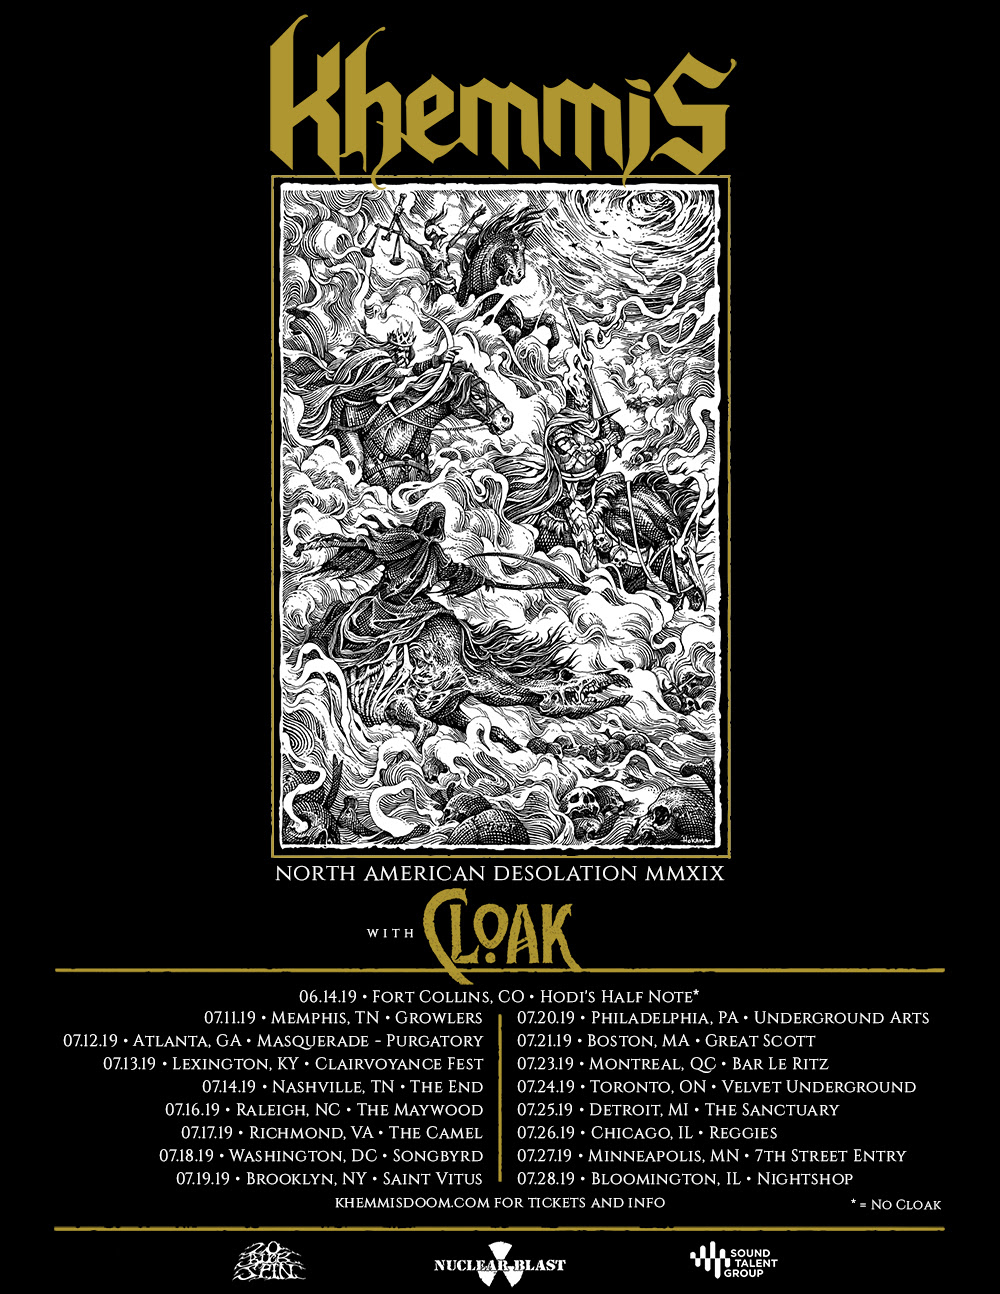 "Denver, Colorado based doomed heavy metal quartet  KHEMMIS  are proud to announce their  North American Desolation 2019  tour .  The 16-date tour will kick-off on July 11th at Growlers in Memphis, Tennessee. The trek will make stops in Richmond, Philadelphia, and Detroit before concluding on July 28th at Nightspot in Bloomington, Illinois. Joining the band on the tour is Atlanta, Georgia's metal quartet  CLOAK . Prior to the main run.  KHEMMIS  will play a stand alone show on June 14th at Hodi's Half Note in Fort Collins Colorado.   KHEMMIS  comments,  ""We're excited to hit the road for our first proper headlining tour in support of '   Desolation   .' This trek features our first Southeastern shows as well as dates in some of our favorite cities/venues, including Saint Vitus in Brooklyn and Reggies in Chicago. If that wasn't enough, we're bringing black 'n' roll maniacs    CLOAK    with us! Make sure you grab your tickets early, since these are our    only    eastern US and Canadian shows for 2019. Brush up on the lyrics, practice your air guitar moves, and catch us on tour this summer!""    KHEMMIS  will be touring in support of their latest album,   Desolation.   Watch the music video for "" Isolation "" here:  https://youtu.be/xZd2liHm8P8   Tickets will be available for purchase on Friday, April 5th at 10AM local time. For more information visit: www.khemmisdoo  m.com   *CORRECT LINK*   Confirmed dates for the  North American Desolation 2019  tour are: 06/14/2019  Hodi's Half Note - Fort Collins, CO* 07/11/2019  Growlers - Memphis, TN 07/12/2019  Masquerade - Atlanta, GA 07/13/2019  Clairvoyance Fest - Lexington, KY 07/14/2019  The End - Nashville, TN 07/16/2019  The Maywood - Raleigh, NC 07/17/2019  The Camel - Richmond, VA  07/18/2019  Songbyrd - Washington, DC 07/19/2019  Saint Vitus - Brooklyn, NY 07/20/2019  Underground Arts - Philadelphia, PA 07/21/2019  Great Scott - Boston, MA 07/23/2019  Bar Le Ritz - Montreal, QC 07/24/2019  Velvet Underground - Toronto, ON 07/25/2019  The Sanctuary - Detroit, MI 07/26/2019  Reggies - Chicago, IL 07/27/2019  7th Street Entry - Minneapolis, MN 07/28/2019  Nightshop - Bloomington, IL *=no cloak   Khemmis  '  passion for progressive and soulful heavy music is more evident than ever in 2018's   Desolation  . Though undeniably influenced by doom and classic metal, to tag the quartet with those labels doesn't do justice to what they've accomplished; a perfect representation of modern heavy metal that integrates the past in a way only possible with the faculty of hindsight. It's impossible to ignore the lengths that the four piece goes to in order to master their craft and produce a highly unique form of heavy sound. Their magnificently uplifting, yet sorrowful groovy riffs weave the listener along on an unparalleled journey.   Desolation   is not just the best  Khemmis  record to date but a testament to the quality and evolution that heavy metal is still capable of. Having worked for the third time with  Dave Otero  of  Flatline Audio  in Denver, the band and producer achieved a deep mutual understanding, able to arrive at the perfect symbiosis of song writing, arrangement, and production value.   Videos:  ""Isolation"" Official Video:  https://youtu.be/xZd2liHm8P8  ""Bloodletting"" Official Visualizer:  https://youtu.be/P073izSb9bQ  ""Flesh To Nothing"" Guitar Play Through:  https://youtu.be/avbDazC6q7Y    Desolation Trailers:  Phil's Non Metal Influences:  https://youtu.be/MStrj-UVl-U  Zach's Non Metal Influences:  https://youtu.be/epX6xKjm_gE  Dan's Non Metal Influences:  https://youtu.be/j_7eJIHjEh0  Phil Pendergast Record Collection: Thin Lizzy:  https://youtu.be/UakD4wjfkGU  Phil Pendergast Record Collection: Hip Hop and Rap:  https://youtu.be/sWzlIEPznvc  Phil Pendergast Record Collection: Miles Davis:  https://youtu.be/KROZKu8mwmA  Phil's Record Collection: Hendrix, John Fahey & Sonny Boy Williamson:  https://youtu.be/ABq0BLvCg8c  Phil Pendergast Record Collection: Judas Priest:  https://youtu.be/sTQGPQ_FPuQ"